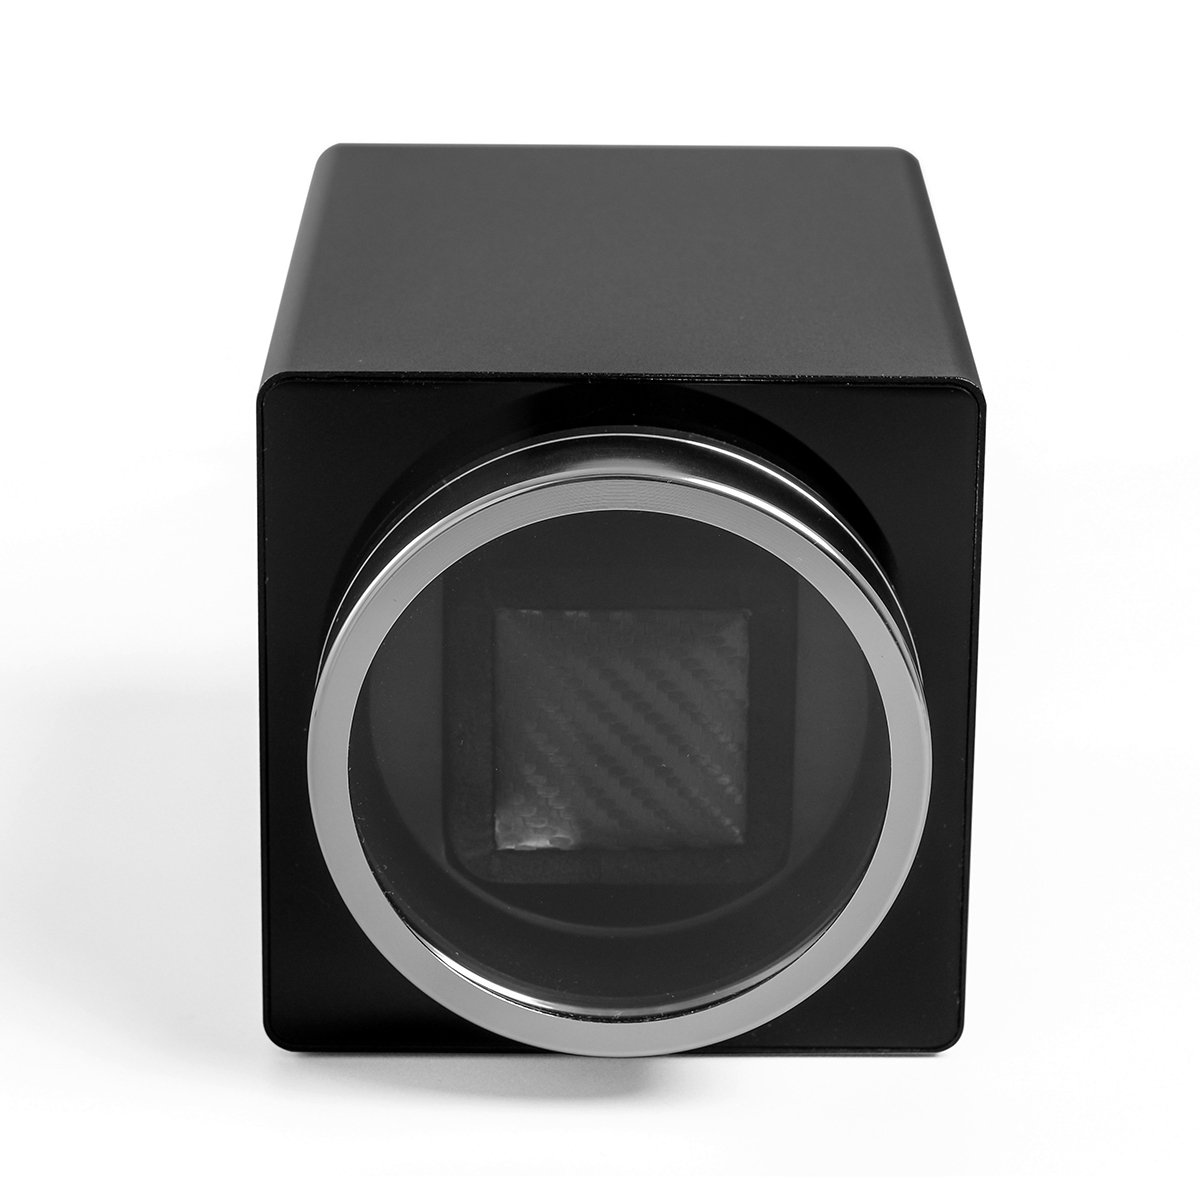 CRITIRON Automatic Single Watch Winder Case Rotating Watches Display Storage Box Black